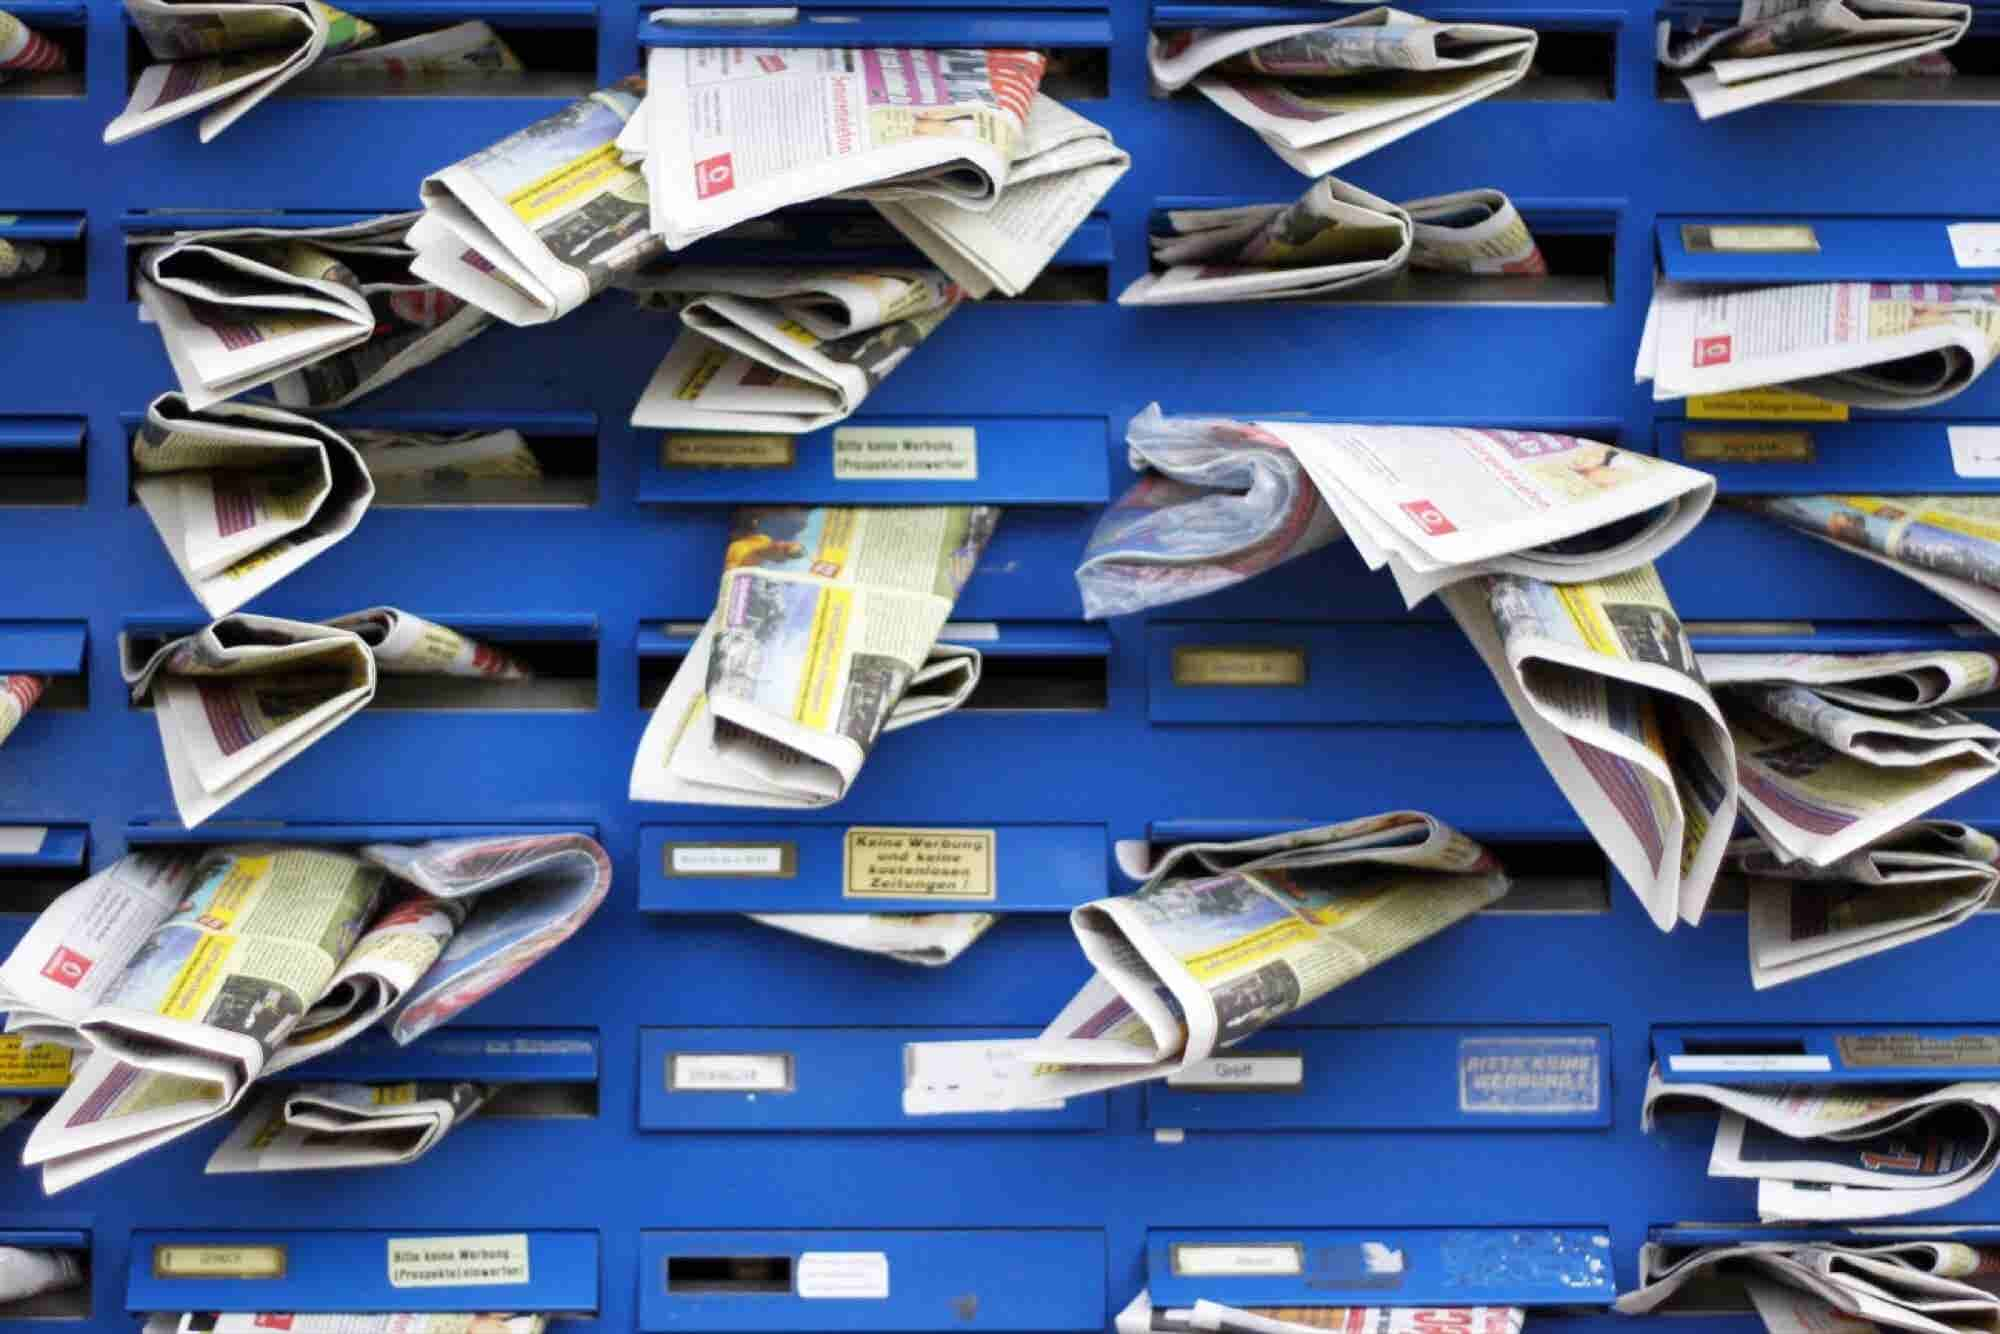 9 Promotional Items to Consider Using in Your Next Direct Mail Campaign